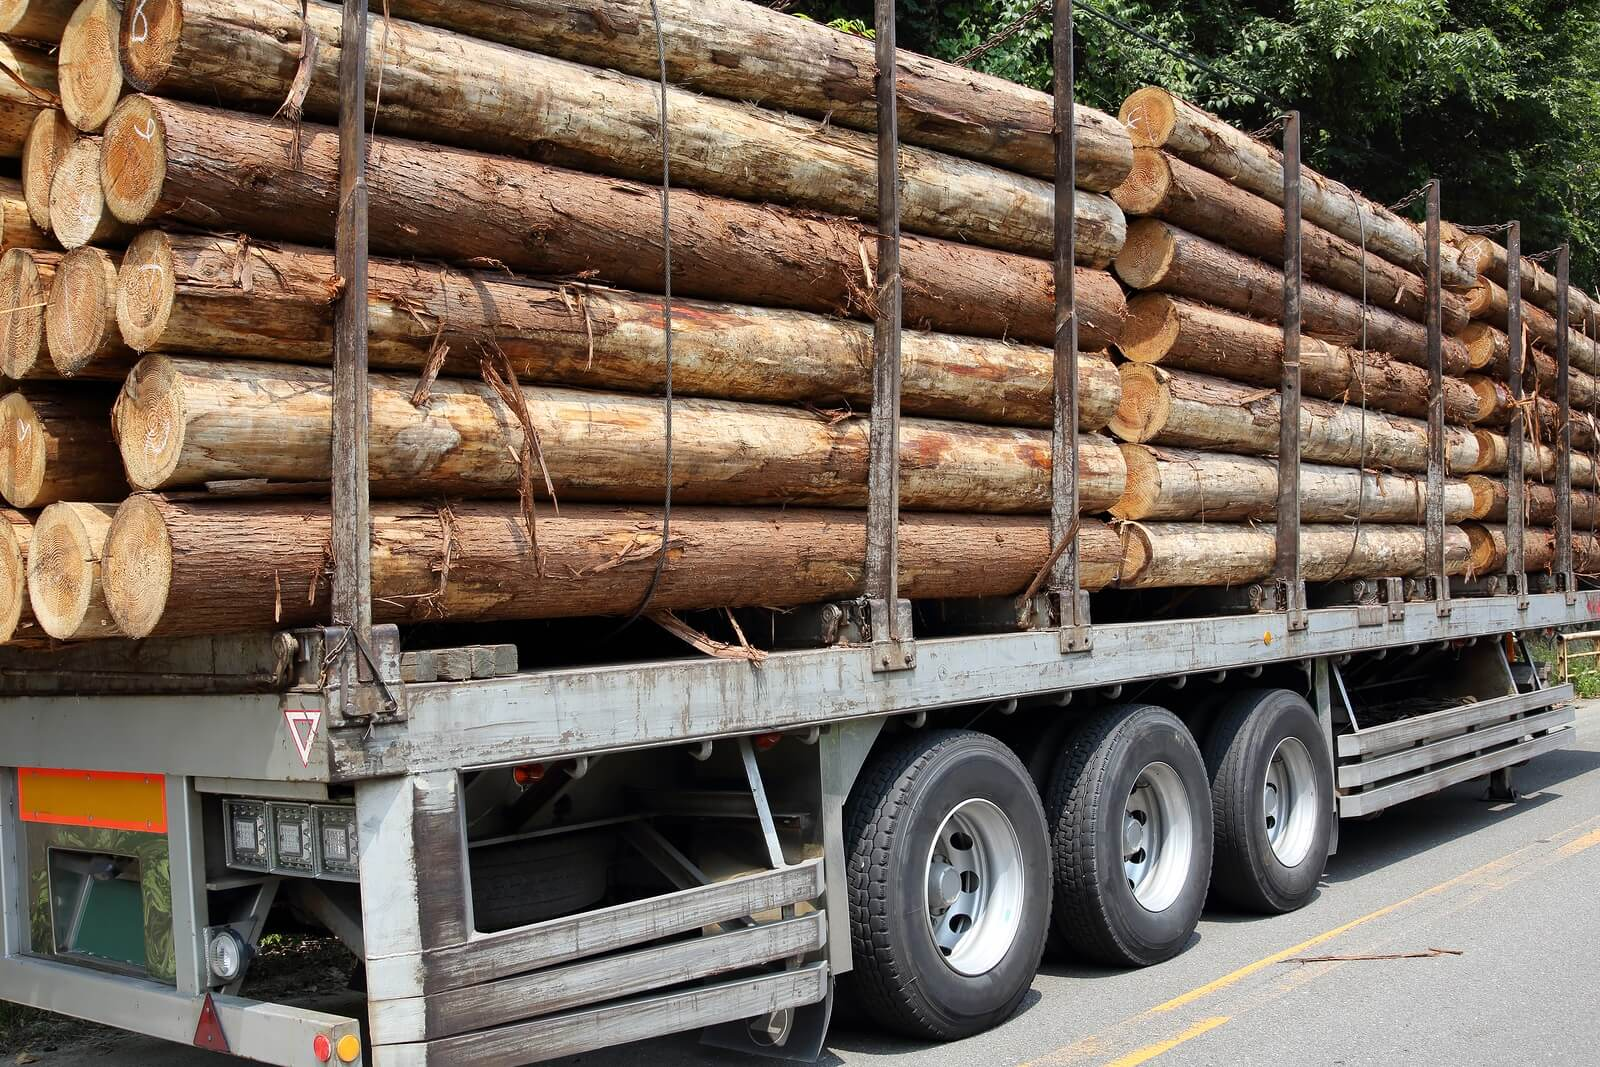 Timber trailer and stack of logs at a forest logging site